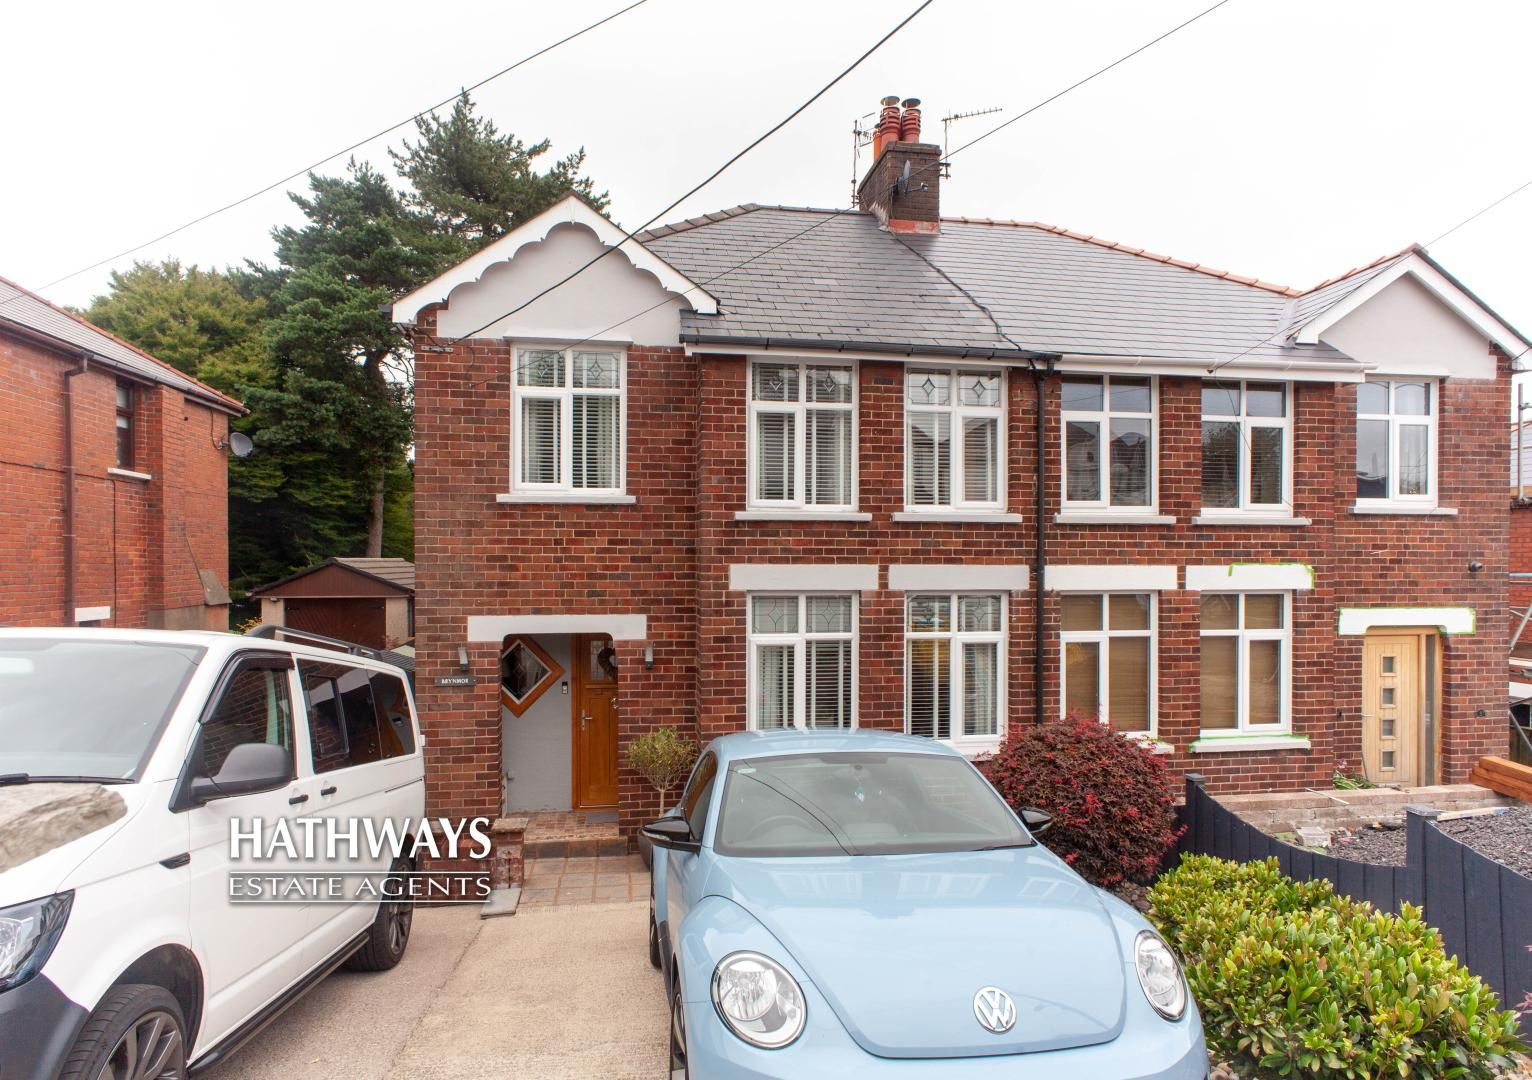 3 bed house for sale in Maesderwen Crescent, NP4